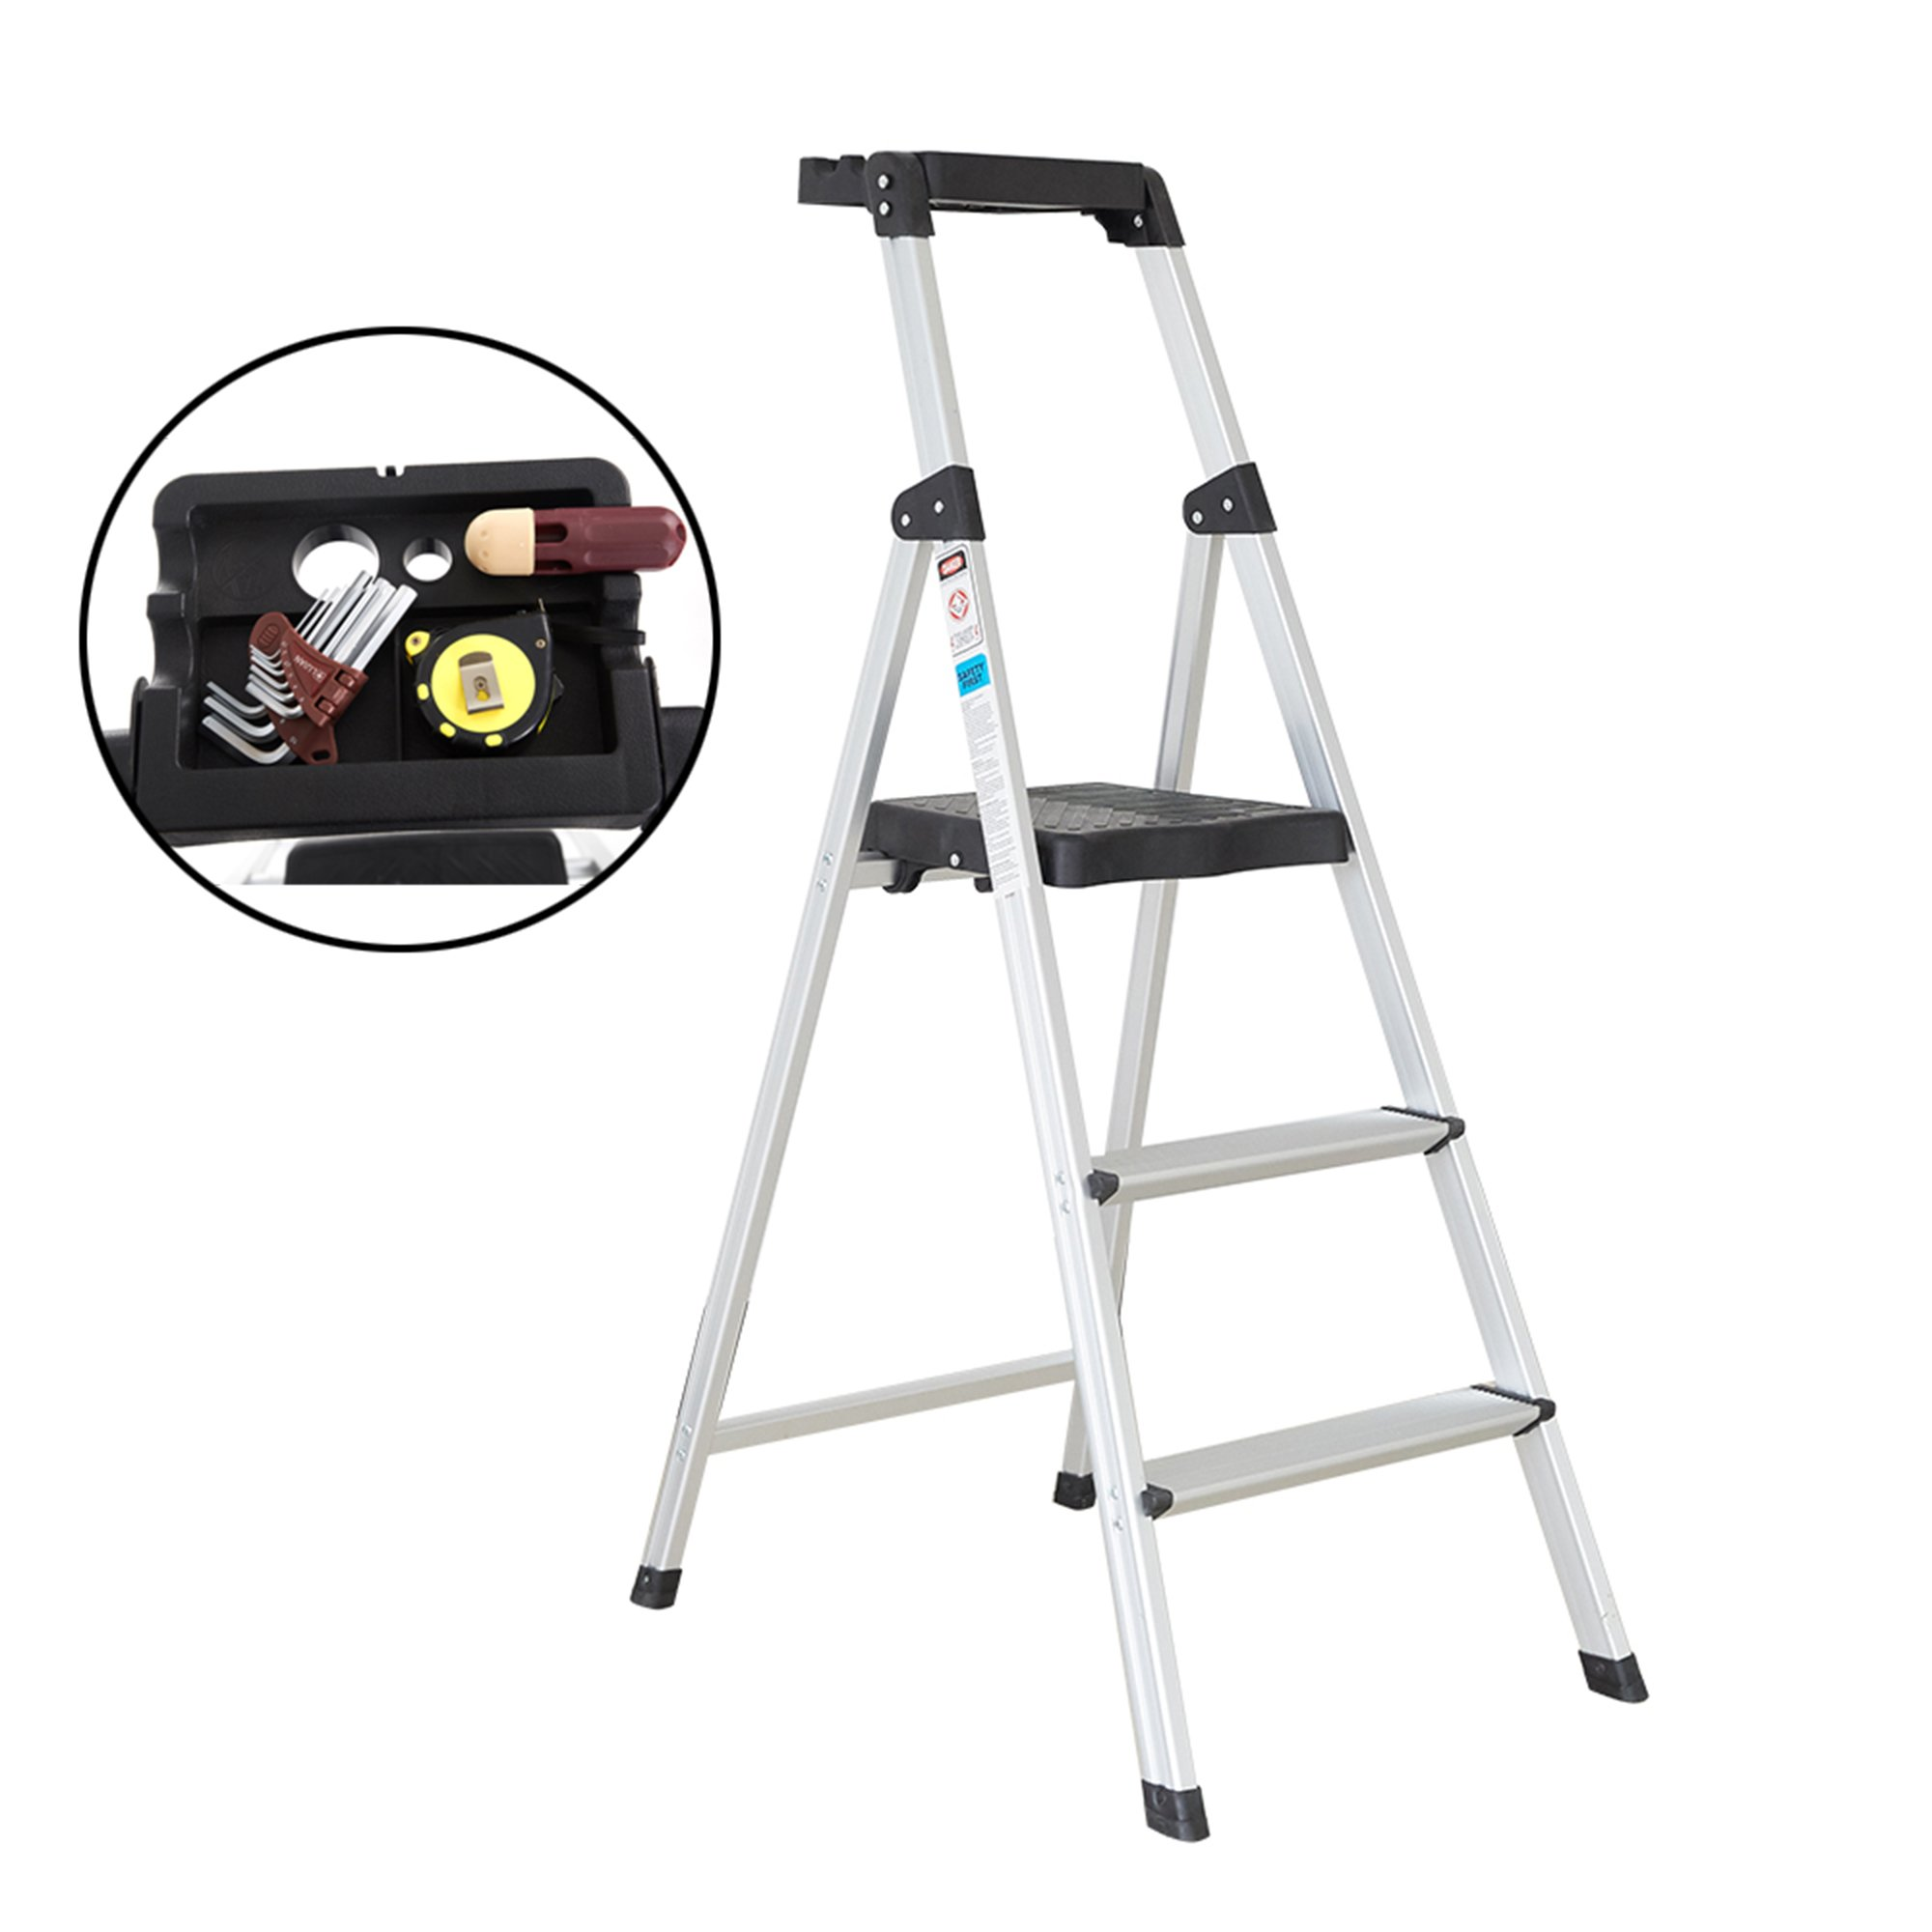 Lucky Tree 3 Step Ladder Aluminum with Tool Project Tray Lightweight Folding Stool with Wide Pedal Anti-Slip Household Stepladders, 330 lbs Capacity